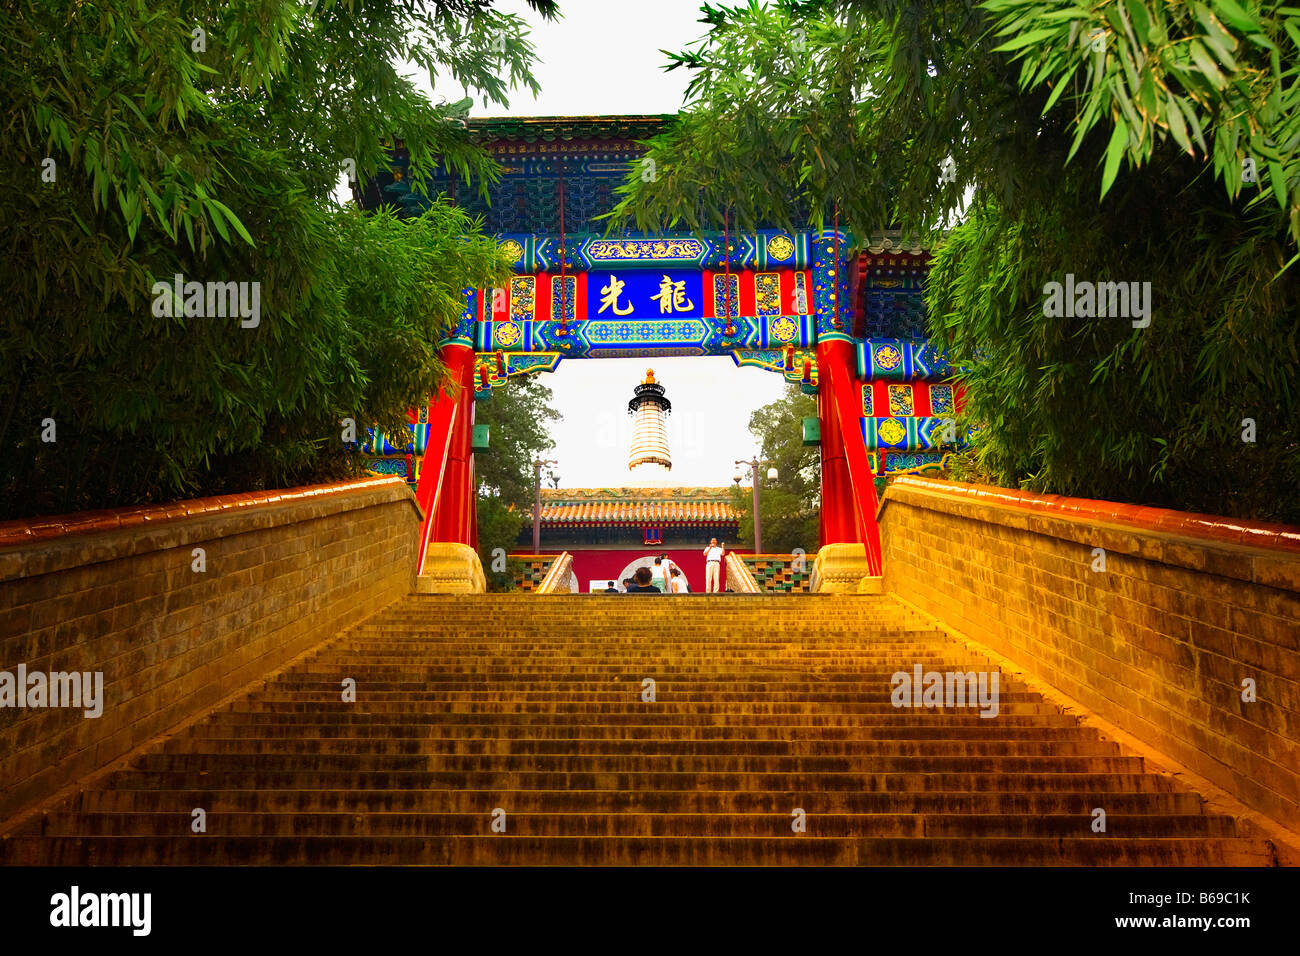 Low angle view of a gate, Beihai Park, Beijing, China - Stock Image